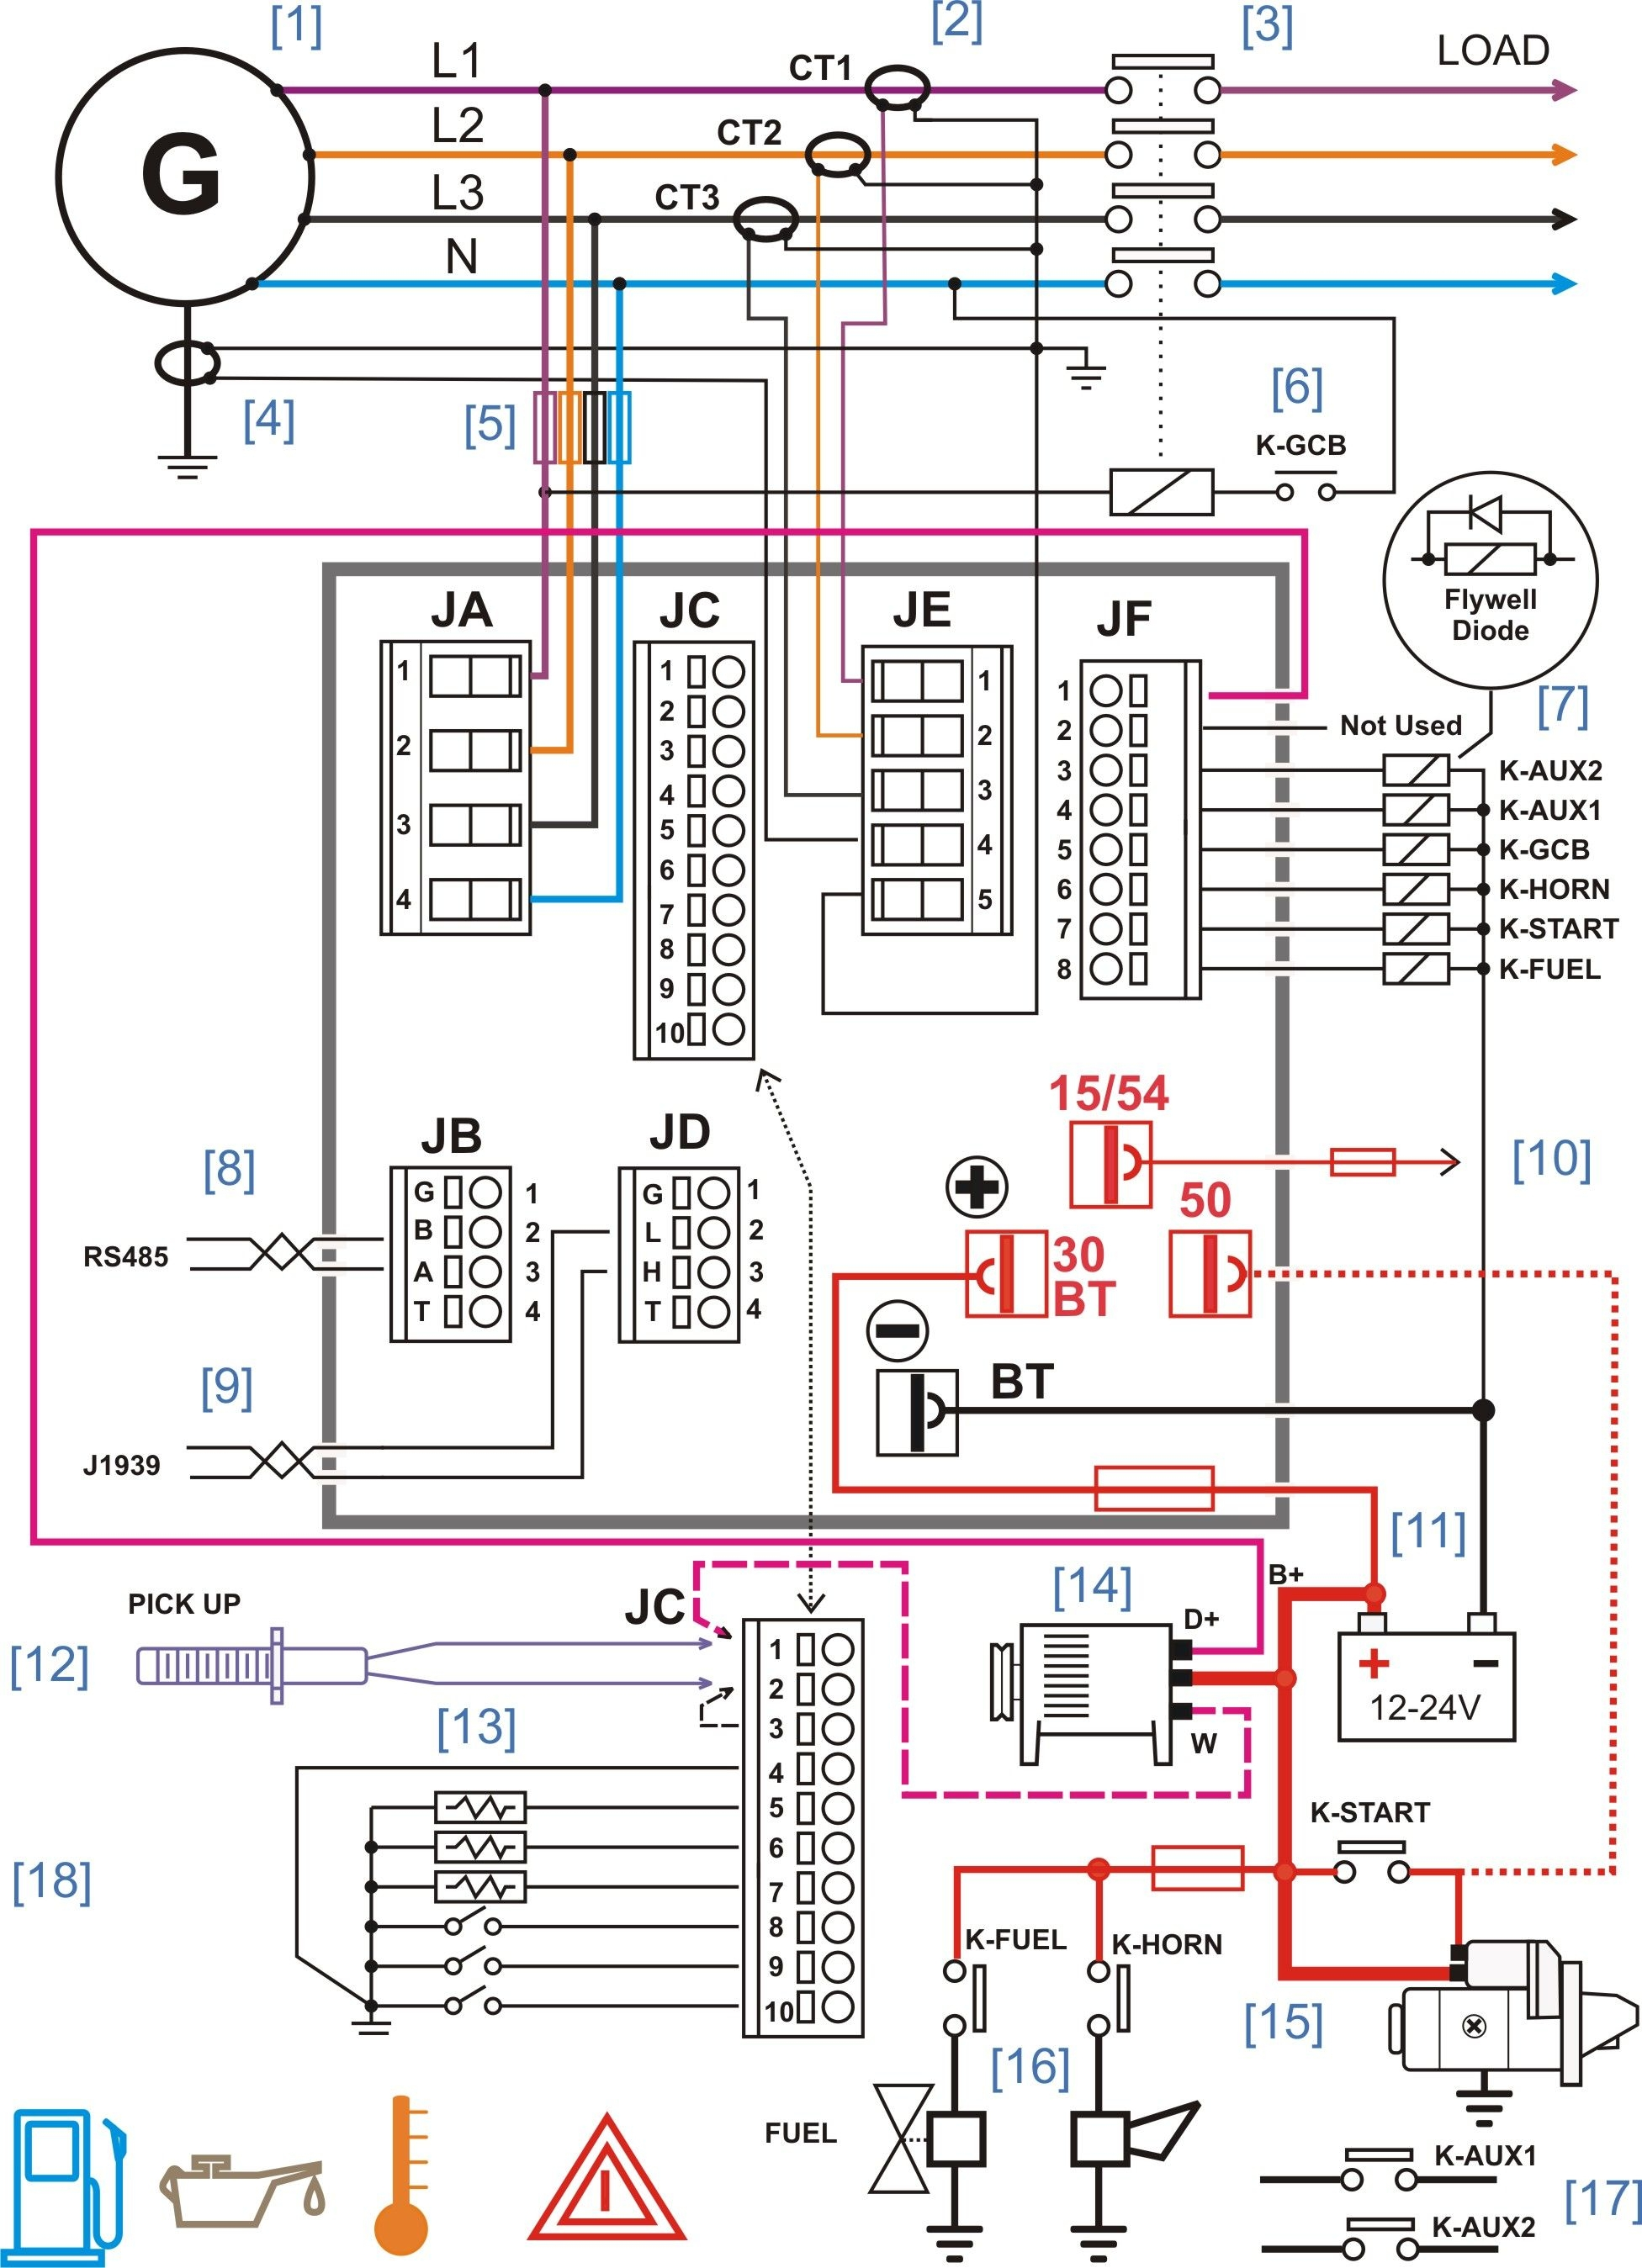 home standby generator wiring diagram Download-Standby Generator Wiring Diagram Diesel Generator Control Panel Wiring Diagram 10-l